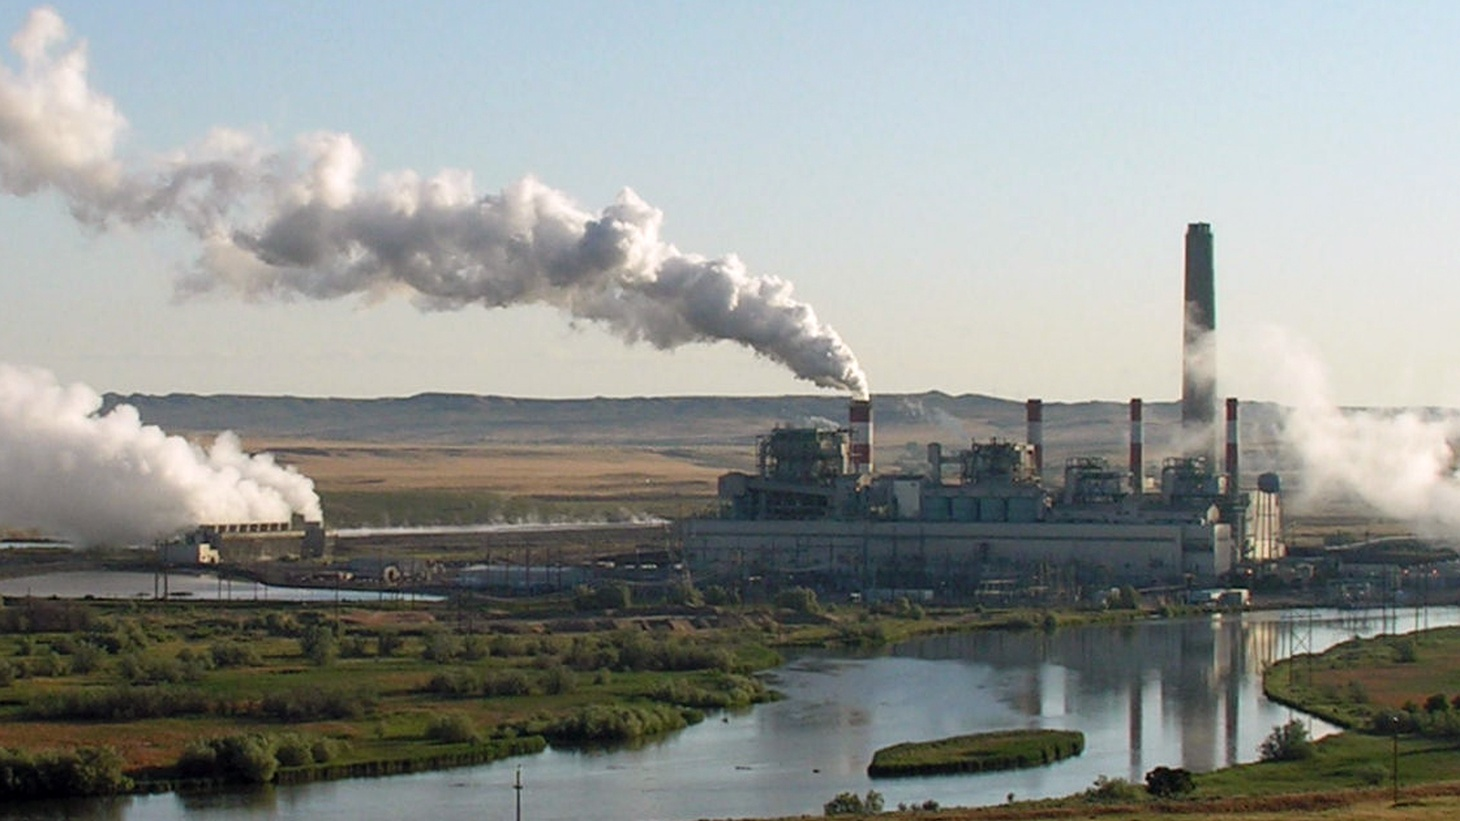 Once again, the US Supreme Court appeared divided today on a challenge to the Obama Administration. Do the EPA's proposed regulations on coal-fired power plants exceed its authority to protect public health? Does the Clean Air Act require the agency to consider the cost?